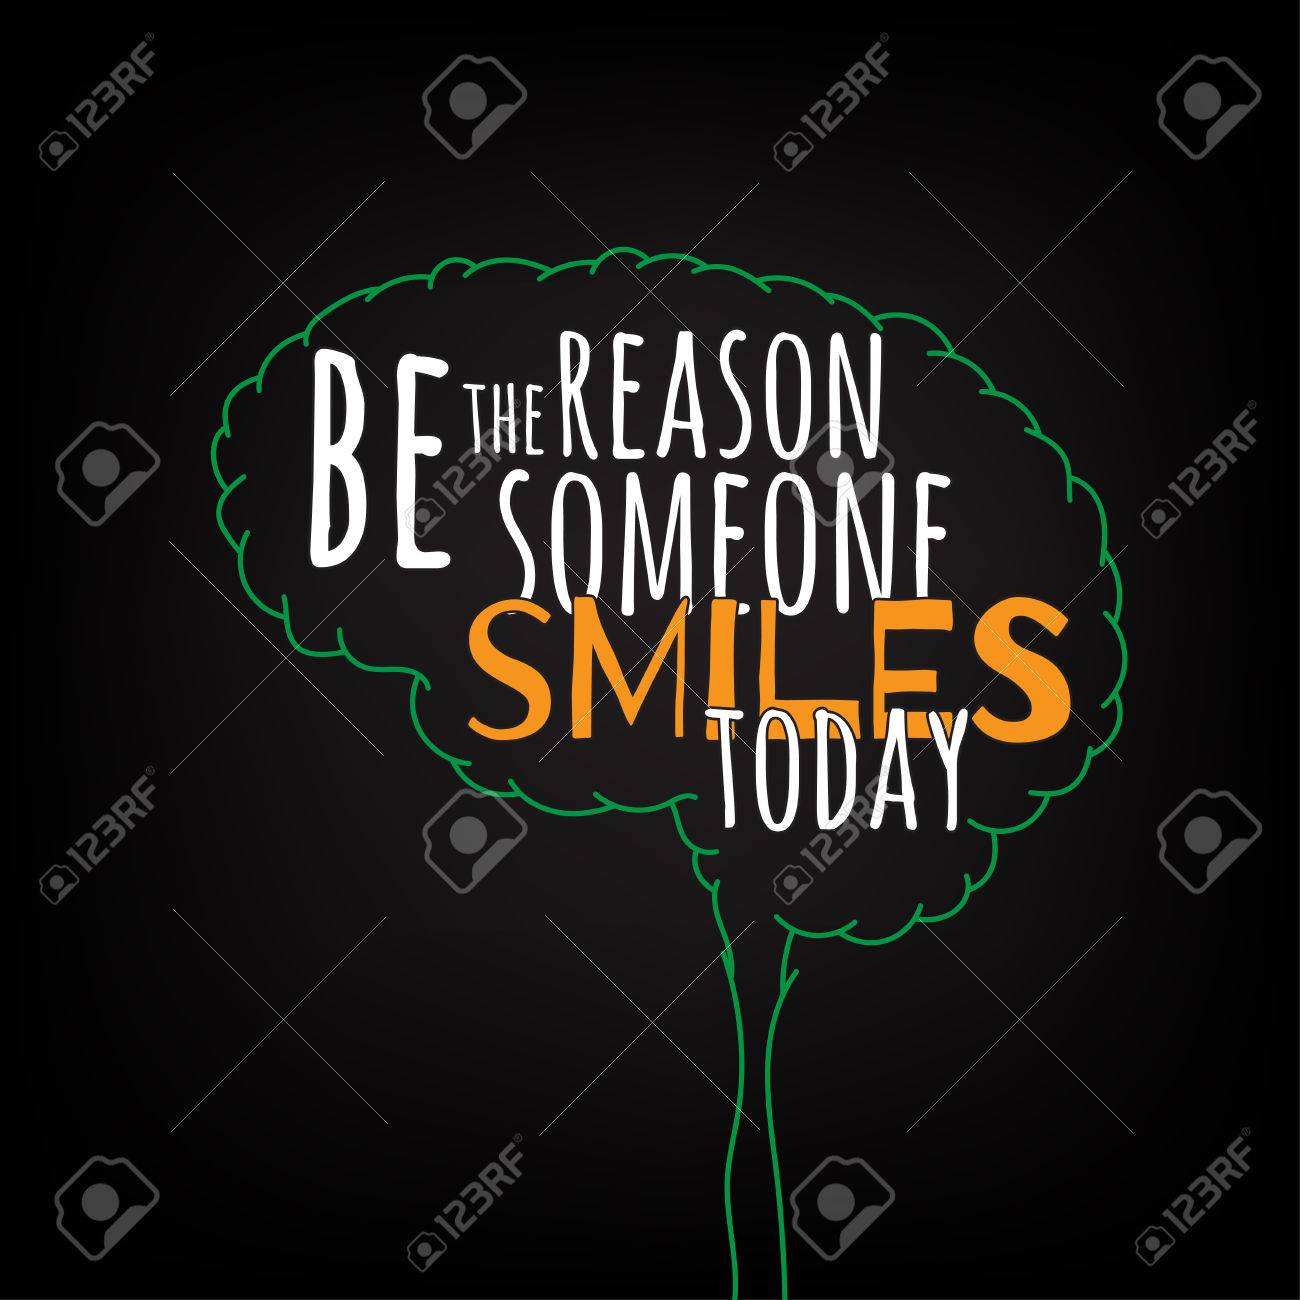 be the reason someone smiles today motivation clever ideas in the brain poster text lettering